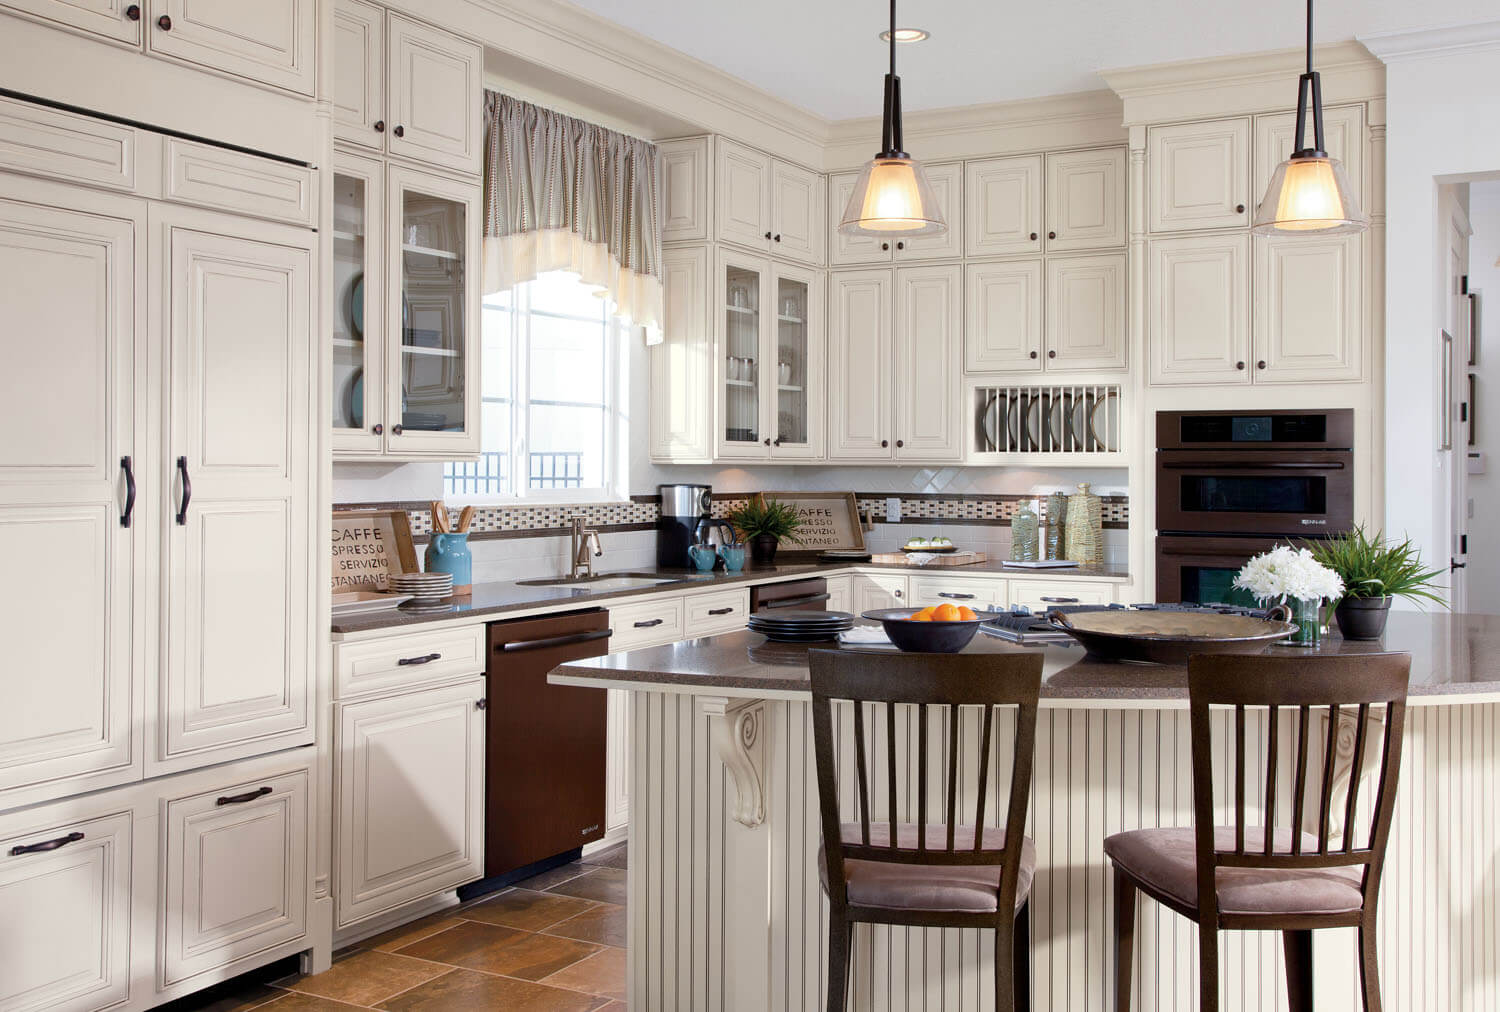 Maple Melamine Kitchen Cabinets Vs Wood Gen B Living Out Loud